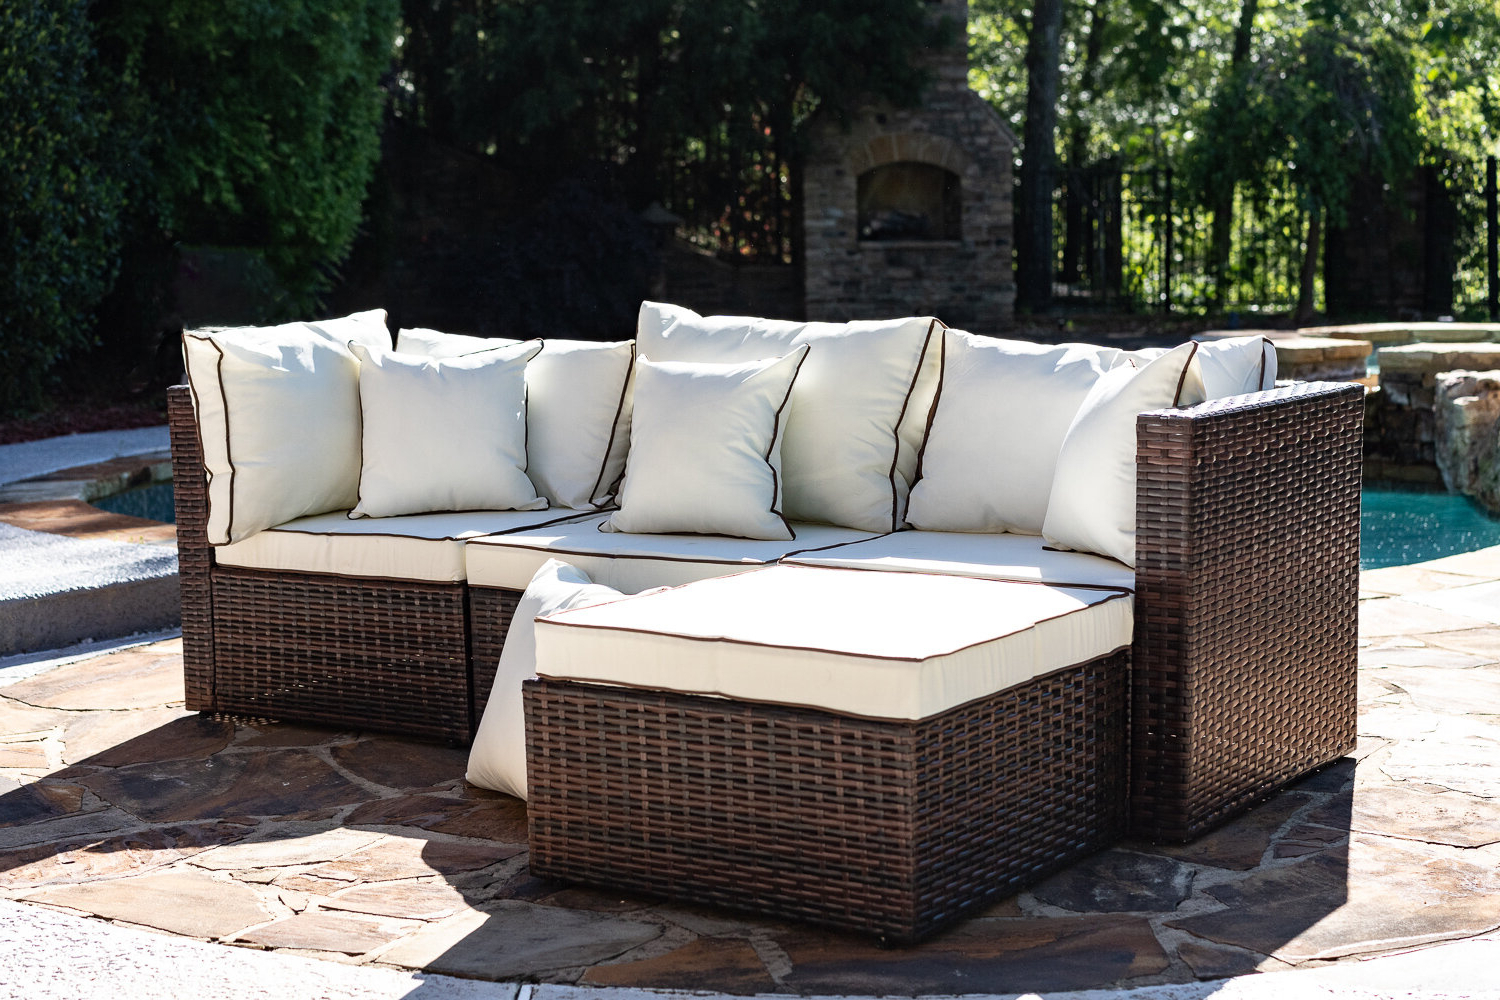 Burruss Patio Sectional With Cushions For Well Known Stockwell Patio Sofas With Cushions (View 13 of 20)